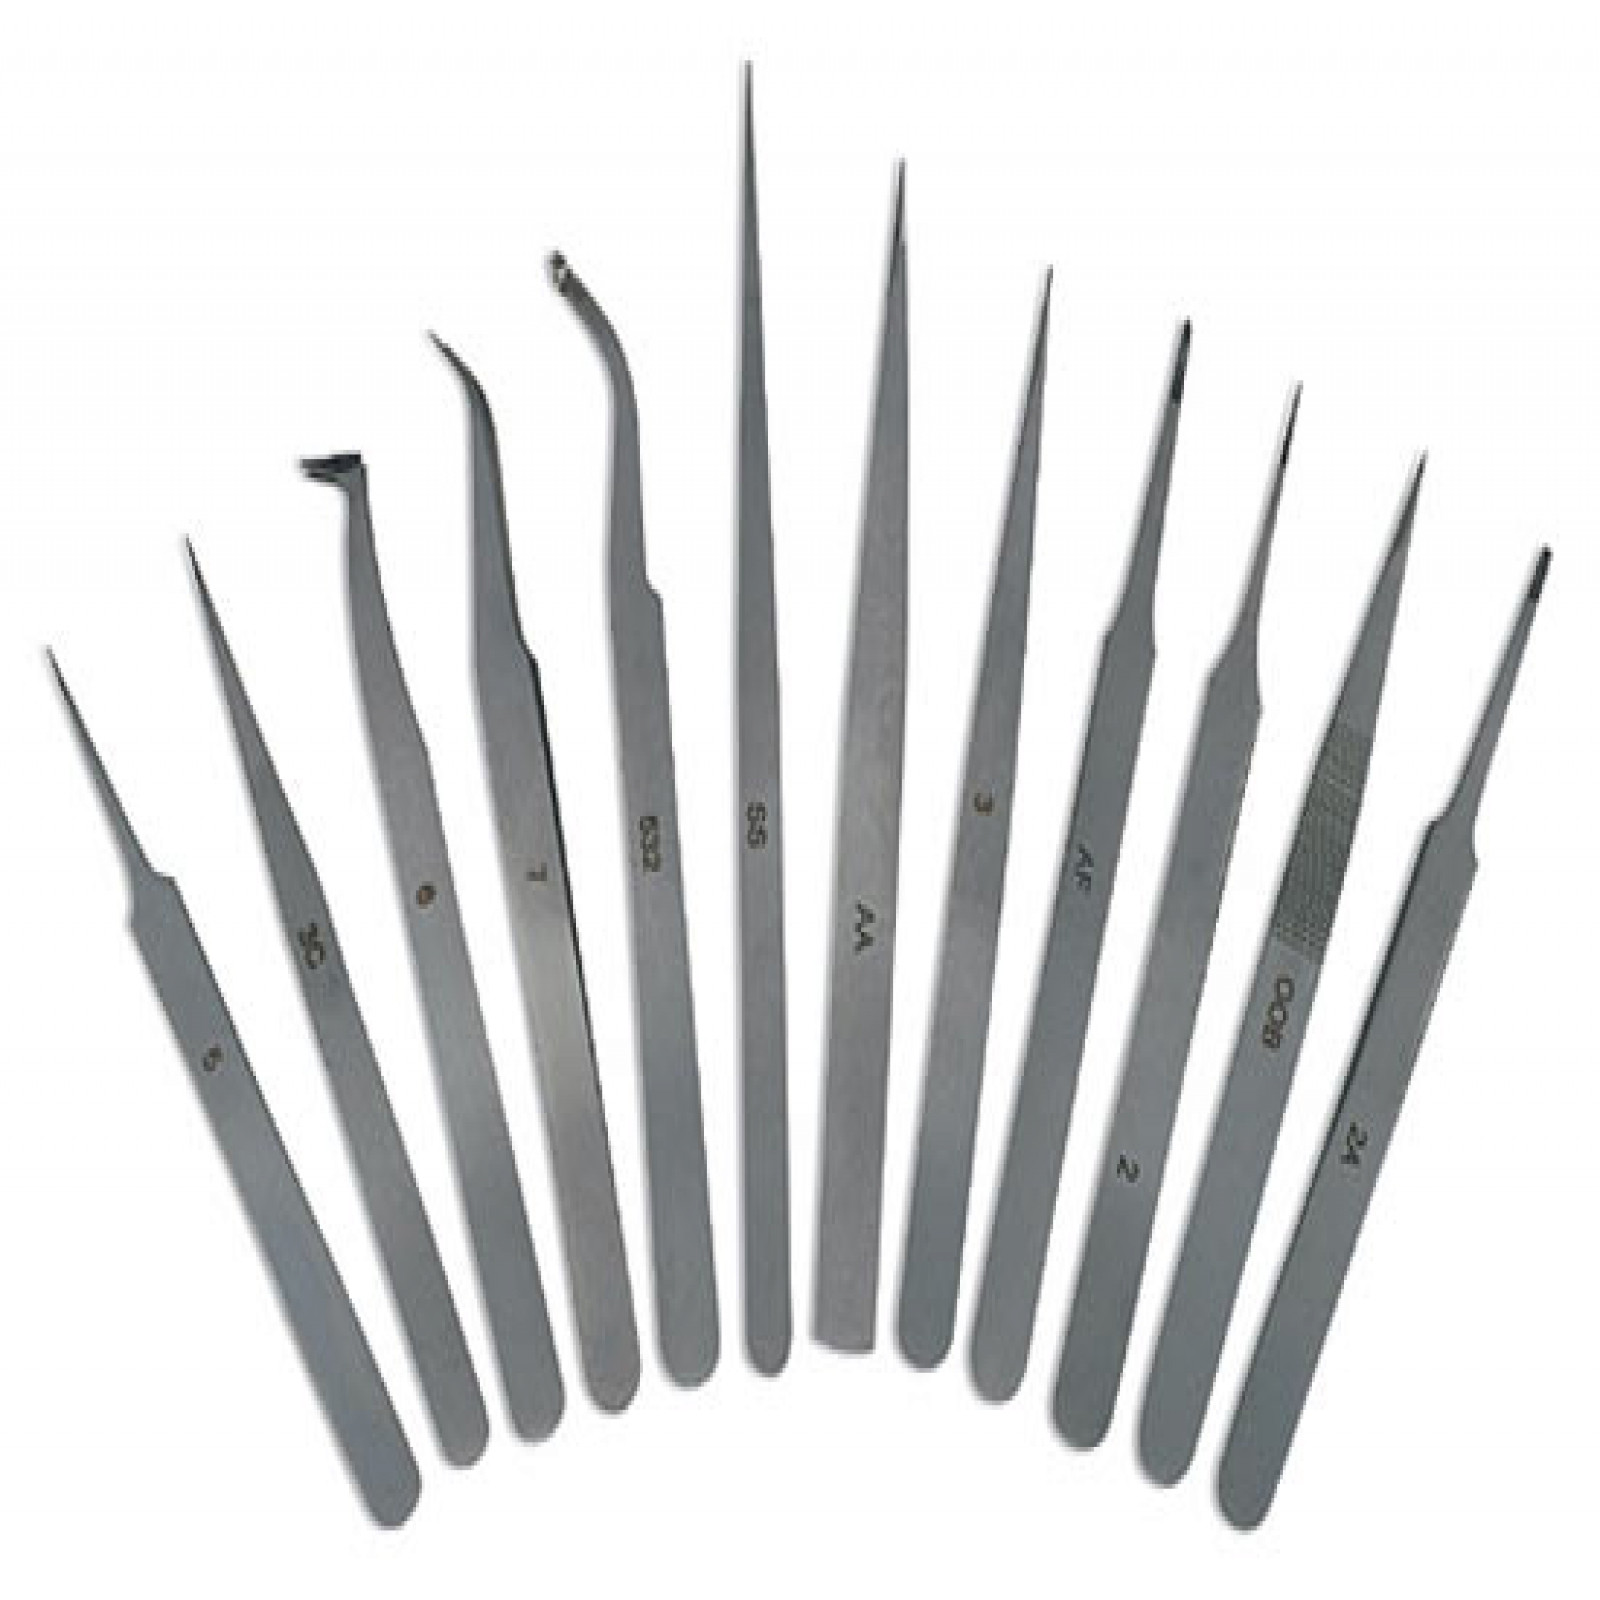 12-Pc. Tweezers Set